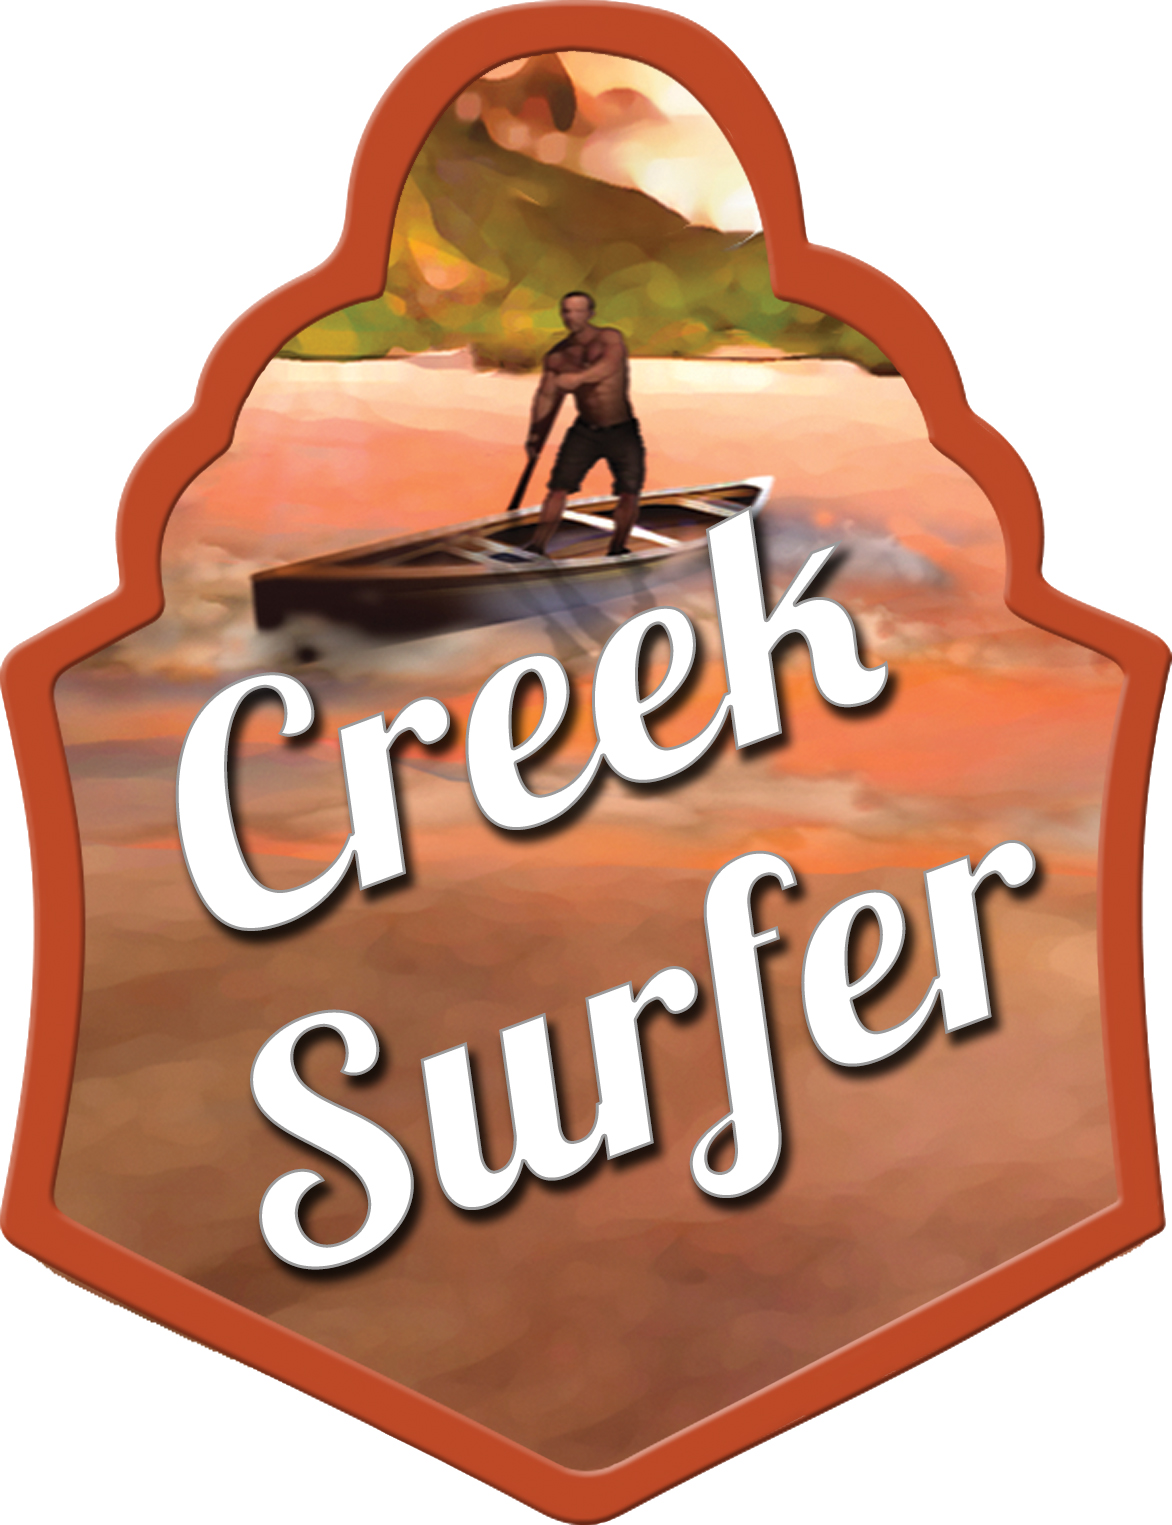 Creek Surfer Tropical IPA